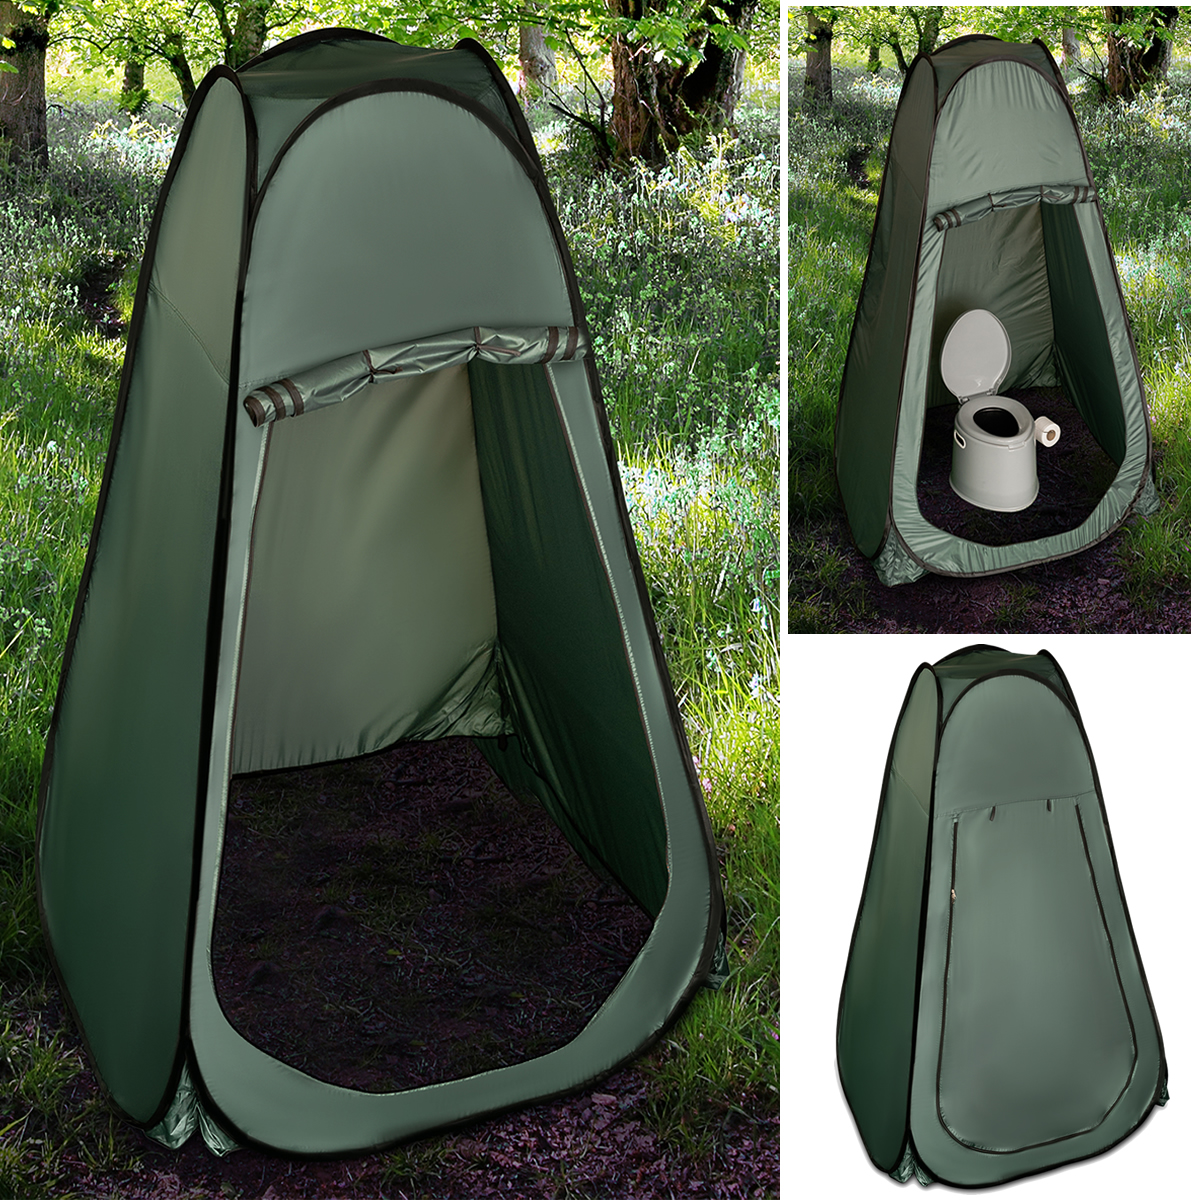 Details about PORTABLE POP UP TENT OUTDOOR CAMPING TOILET SHOWER INSTANT CHANGING PRIVACY ROOM